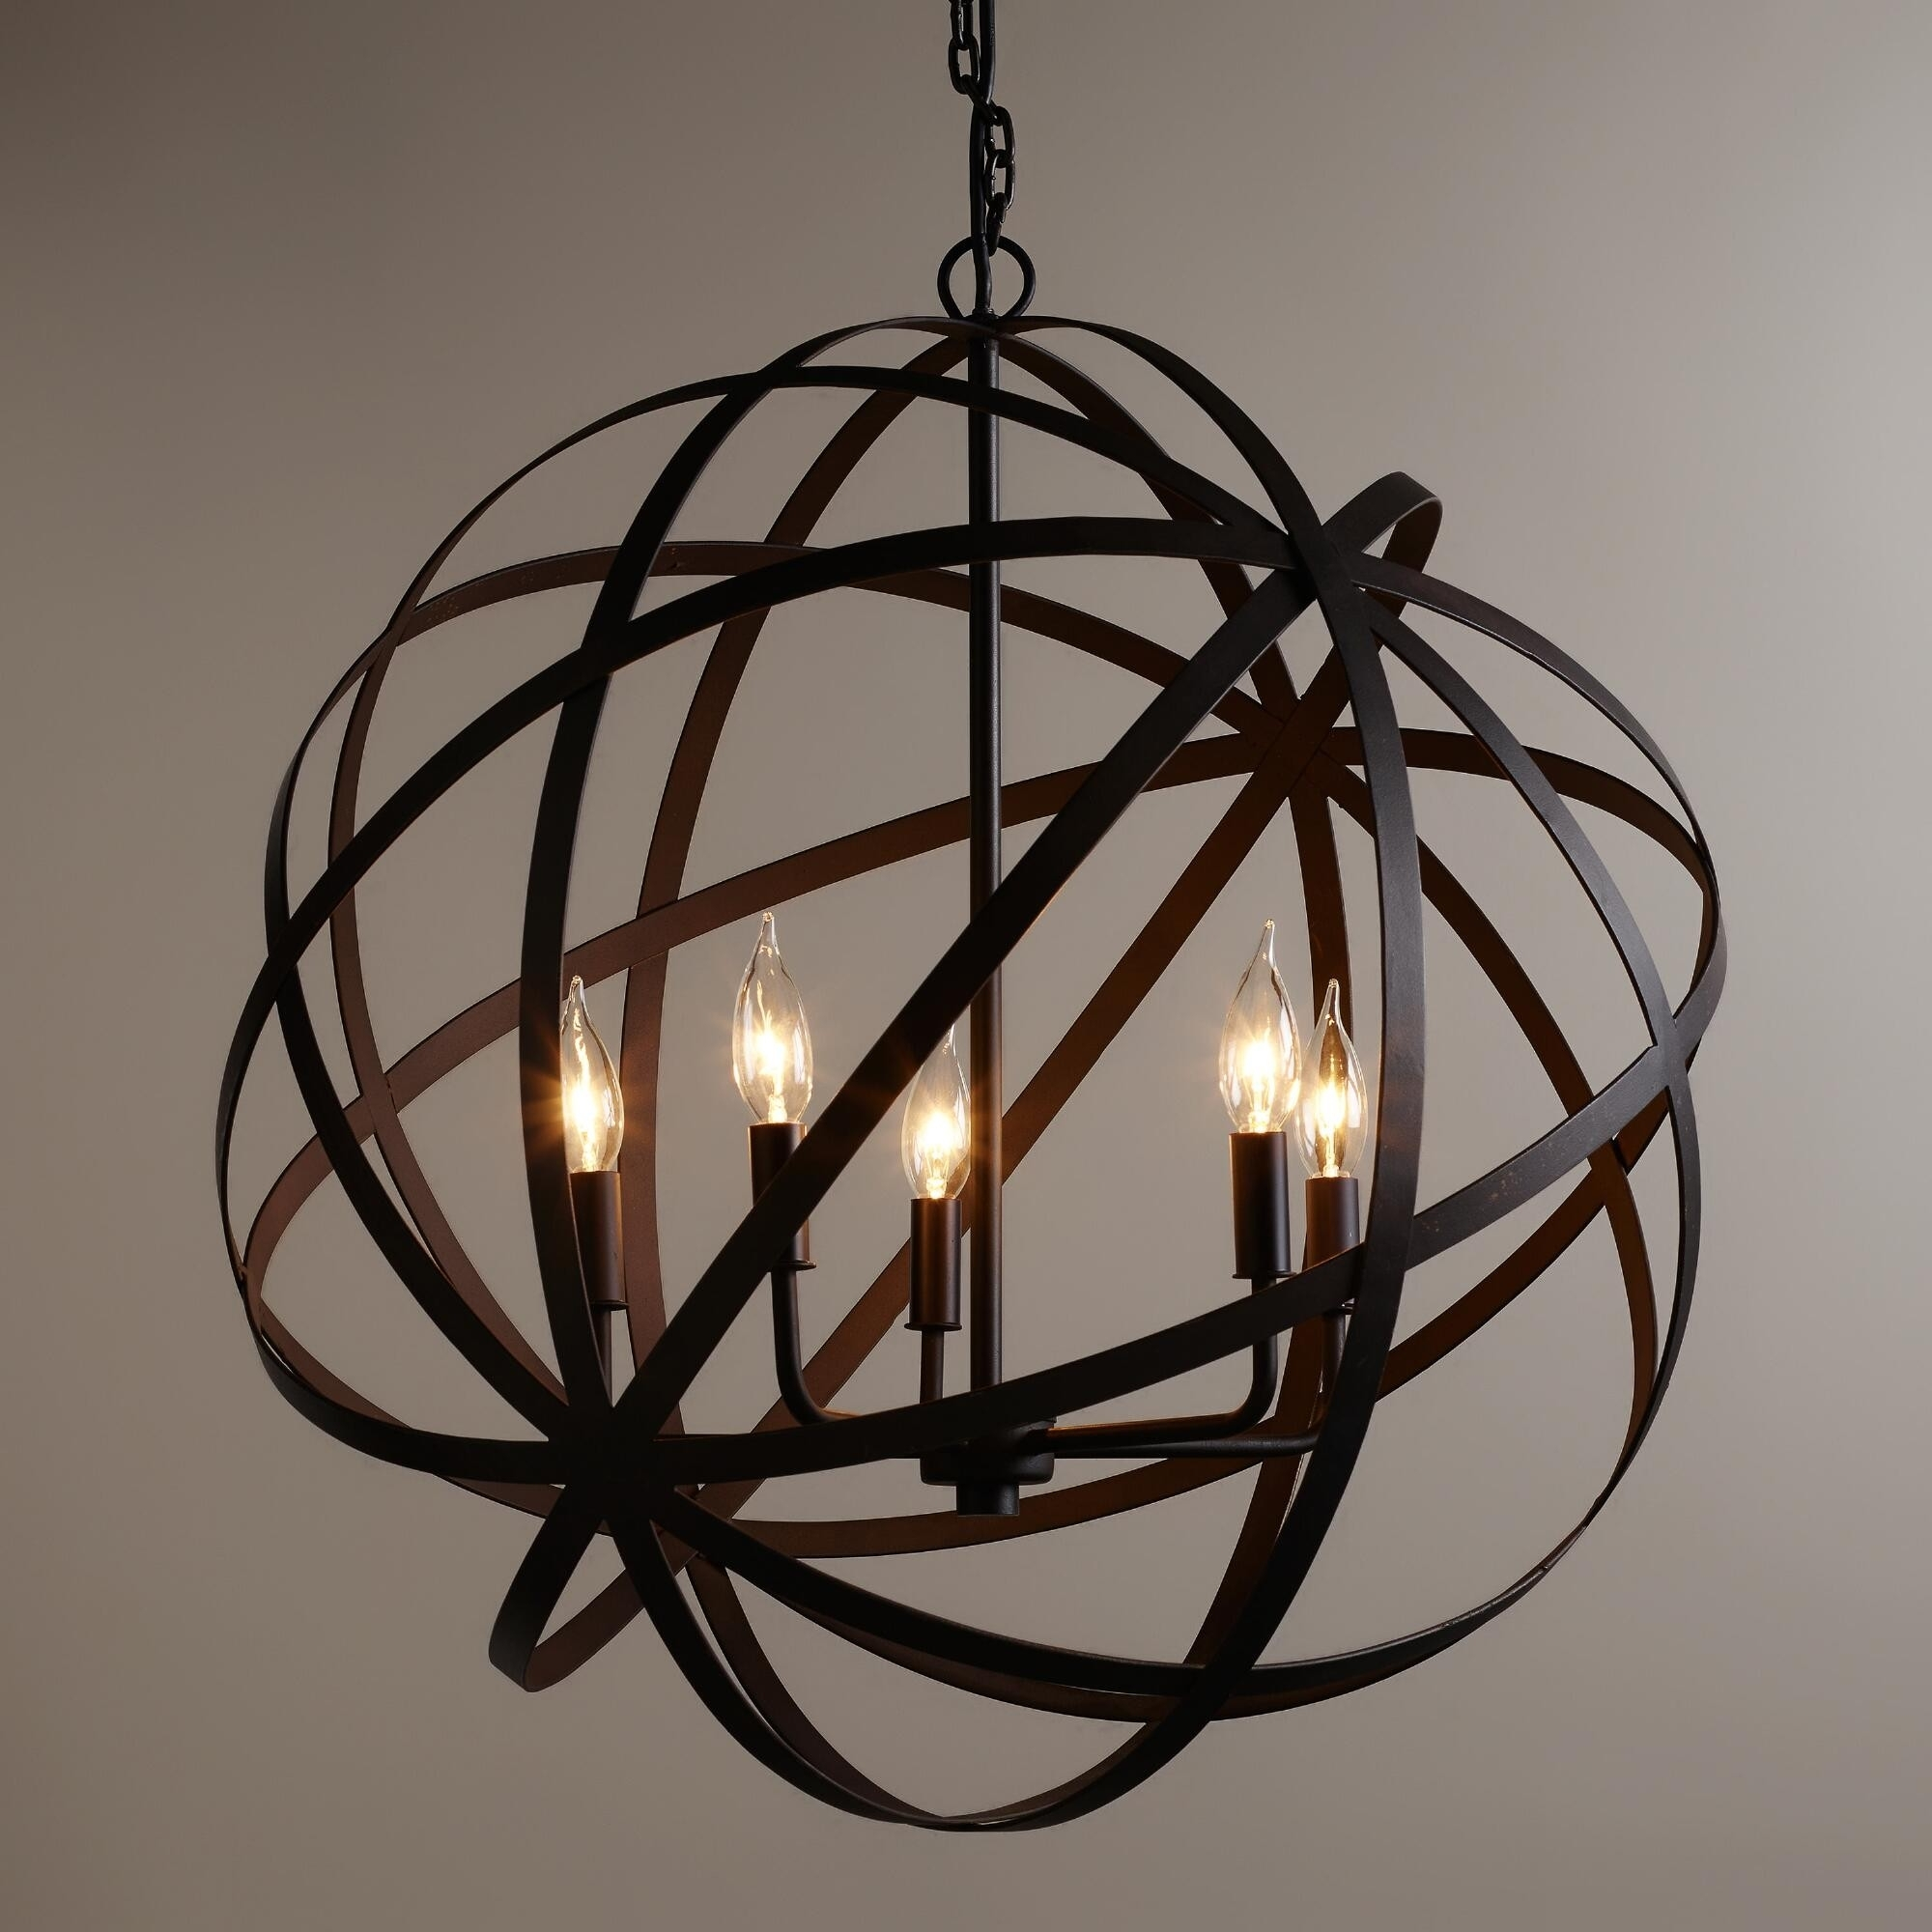 Extra Large Outdoor Chandeliers : Lamp World With Regard To Famous Contemporary Large Chandeliers (Gallery 11 of 15)